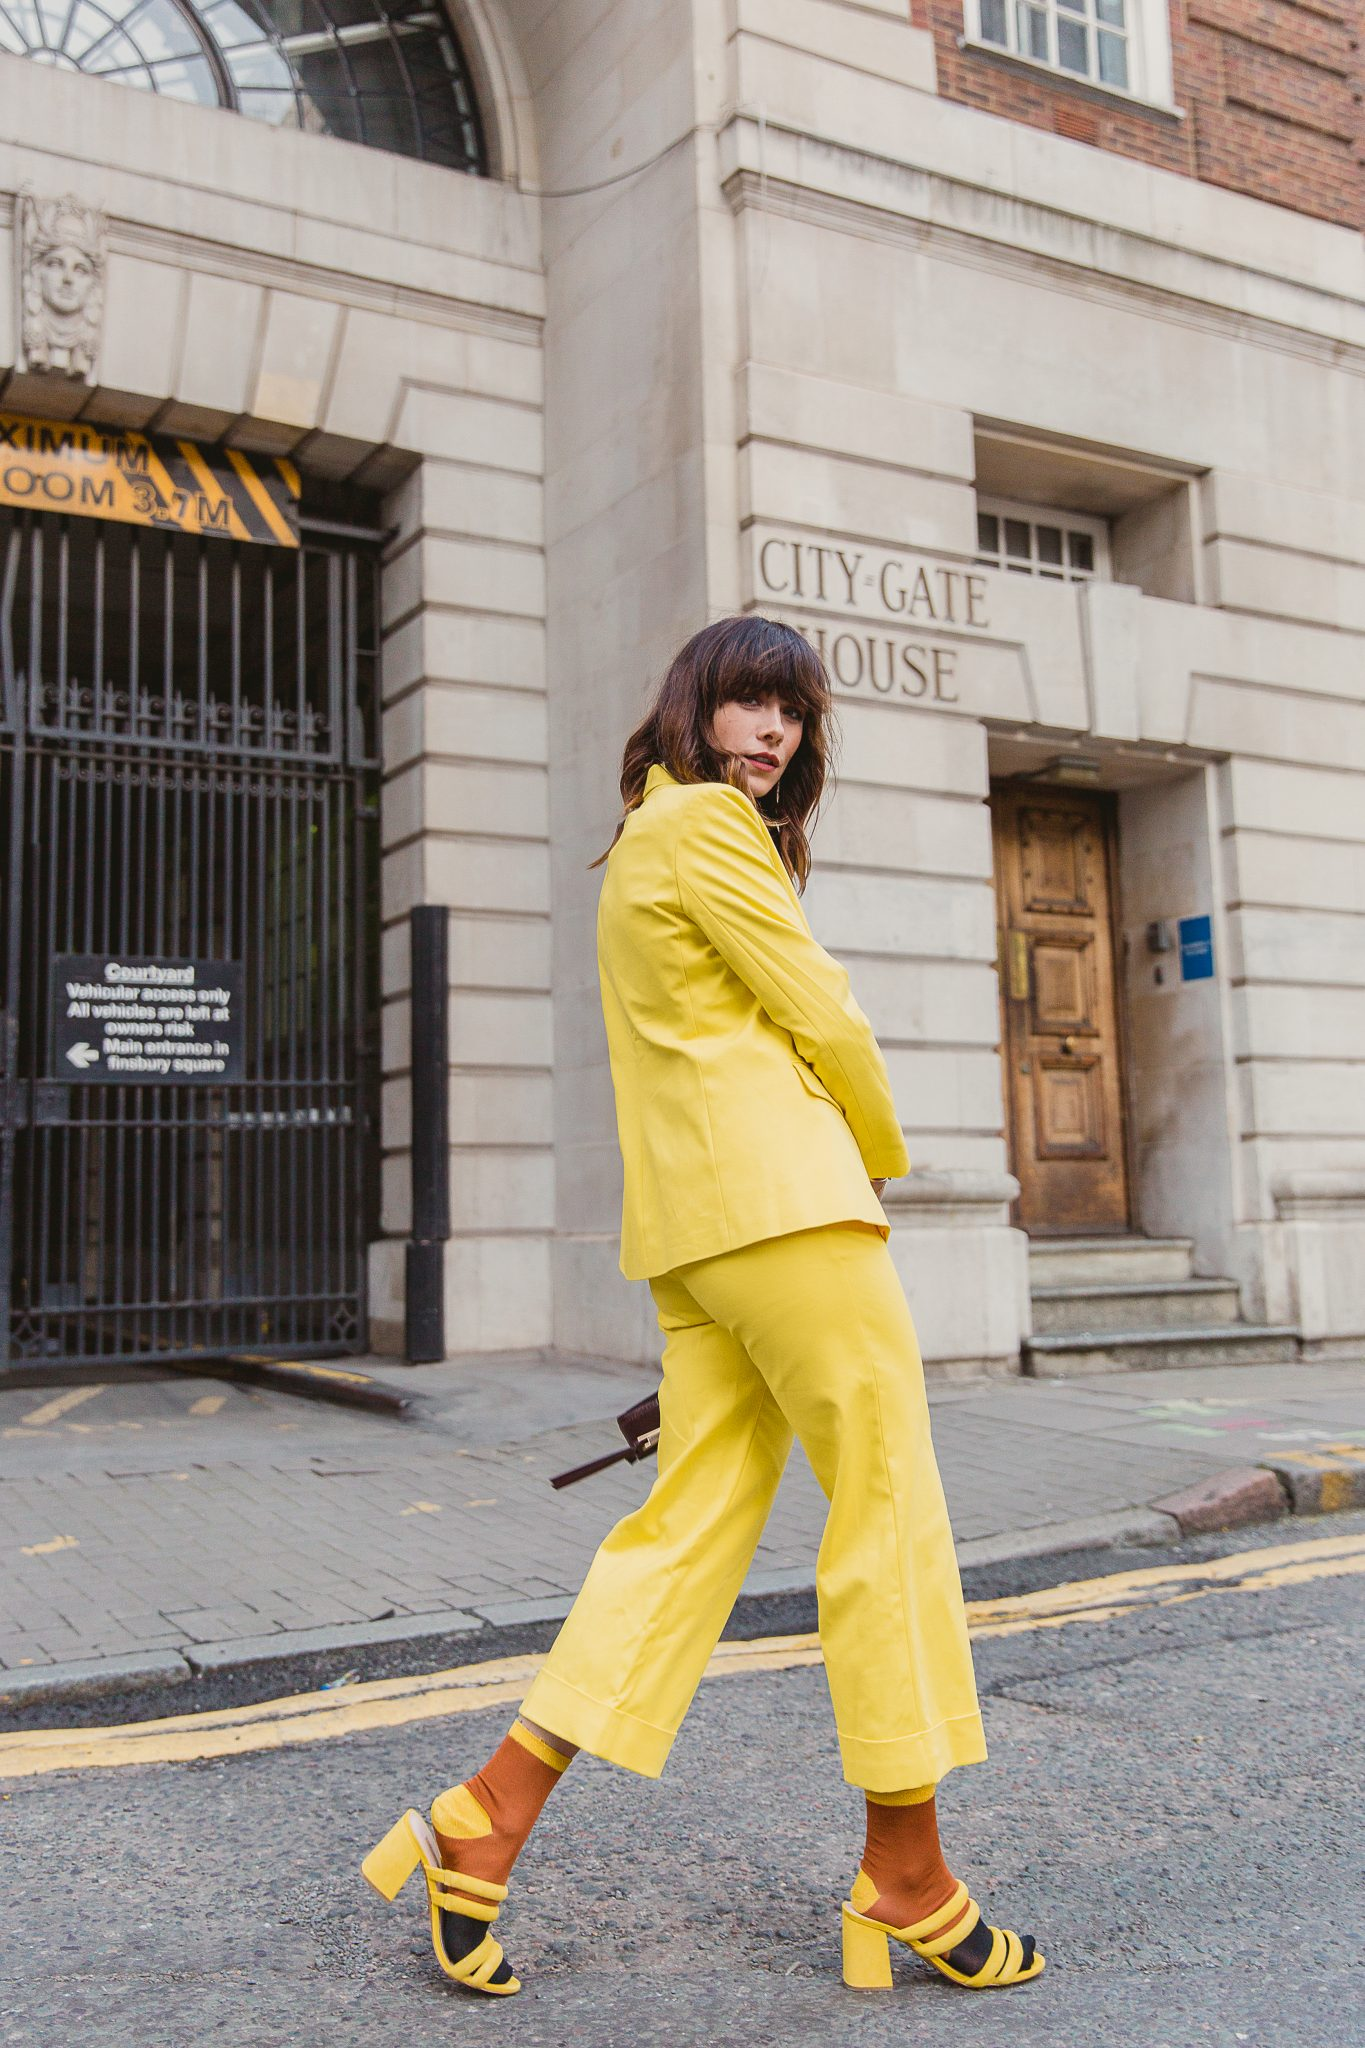 MEGAN ELLABY HOW TO STYLE DUNGAREES